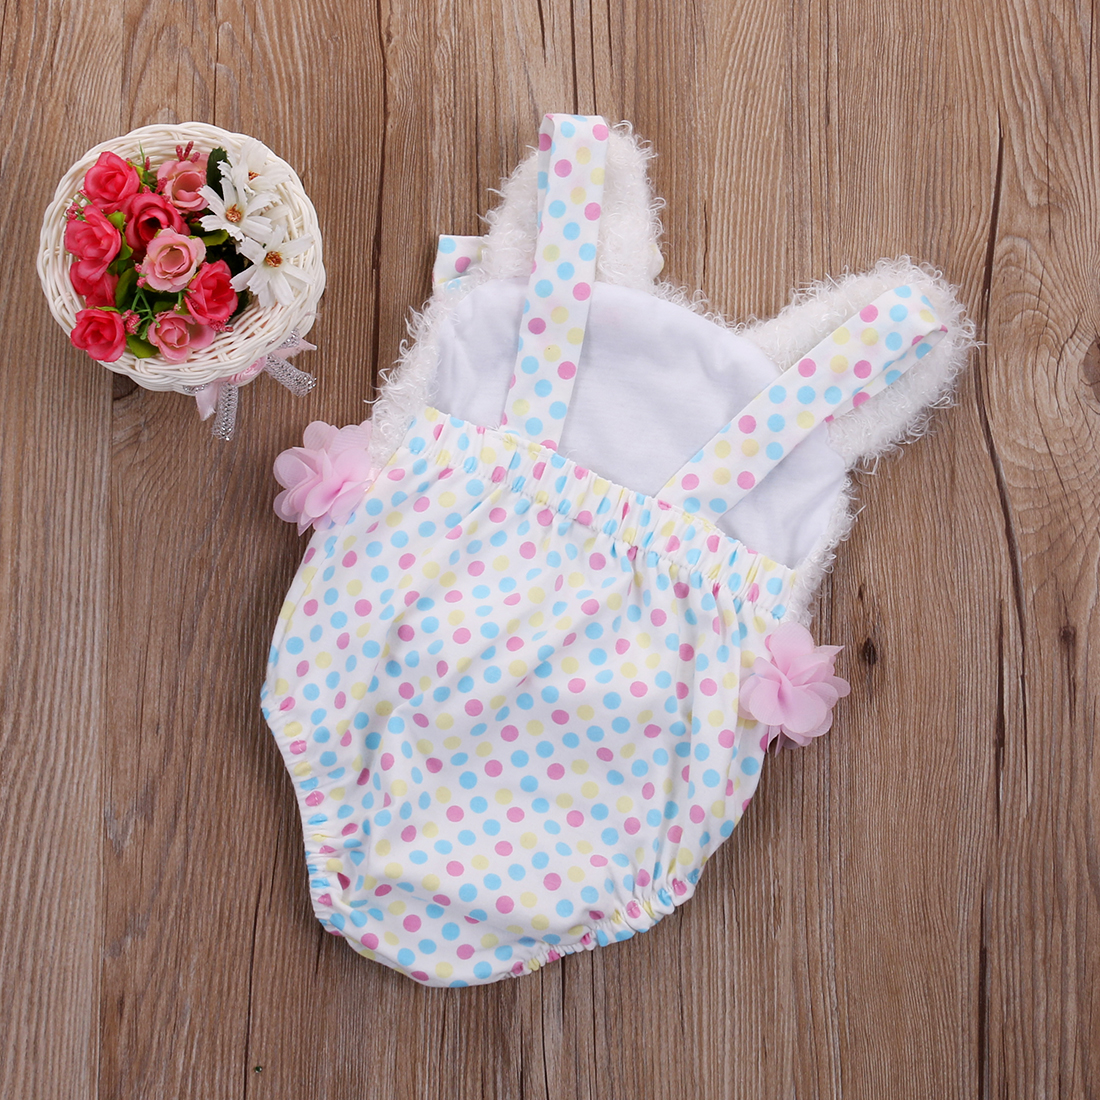 Summer Newborn Baby Girl Clothes Cute Bear Bodysuit Jumpsuit Playsuit Outfits Set One-pieces Clothes Wholesale